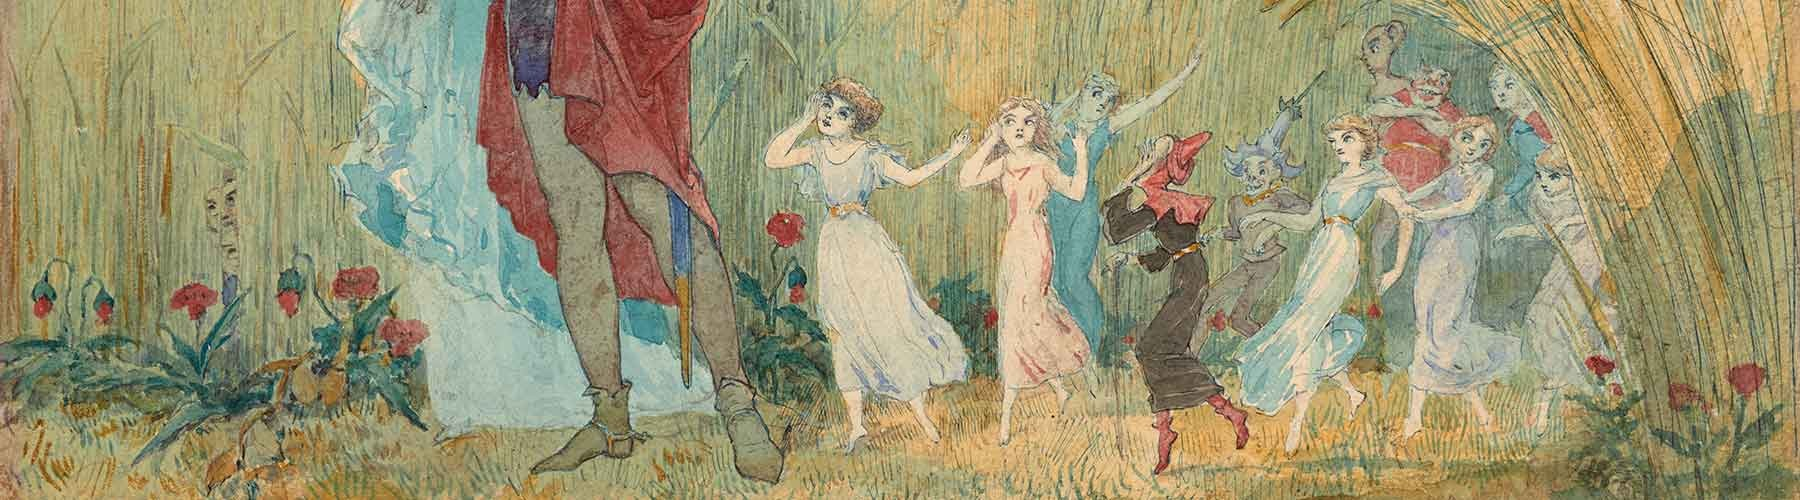 Watercolor of eavesdropping fairies